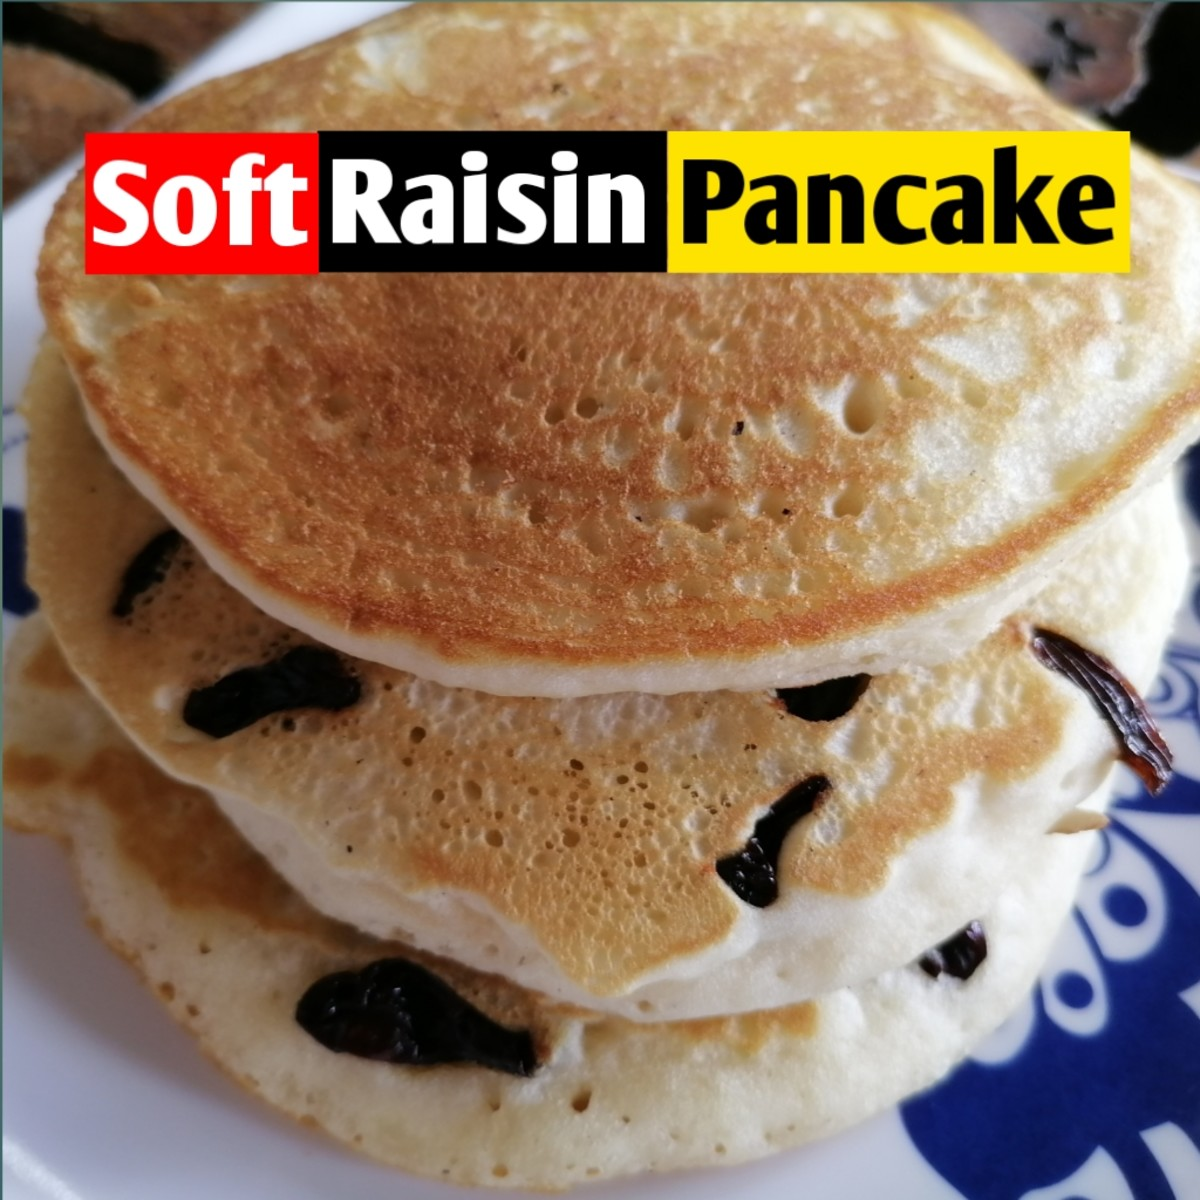 Try adding raisins to your pancakes!